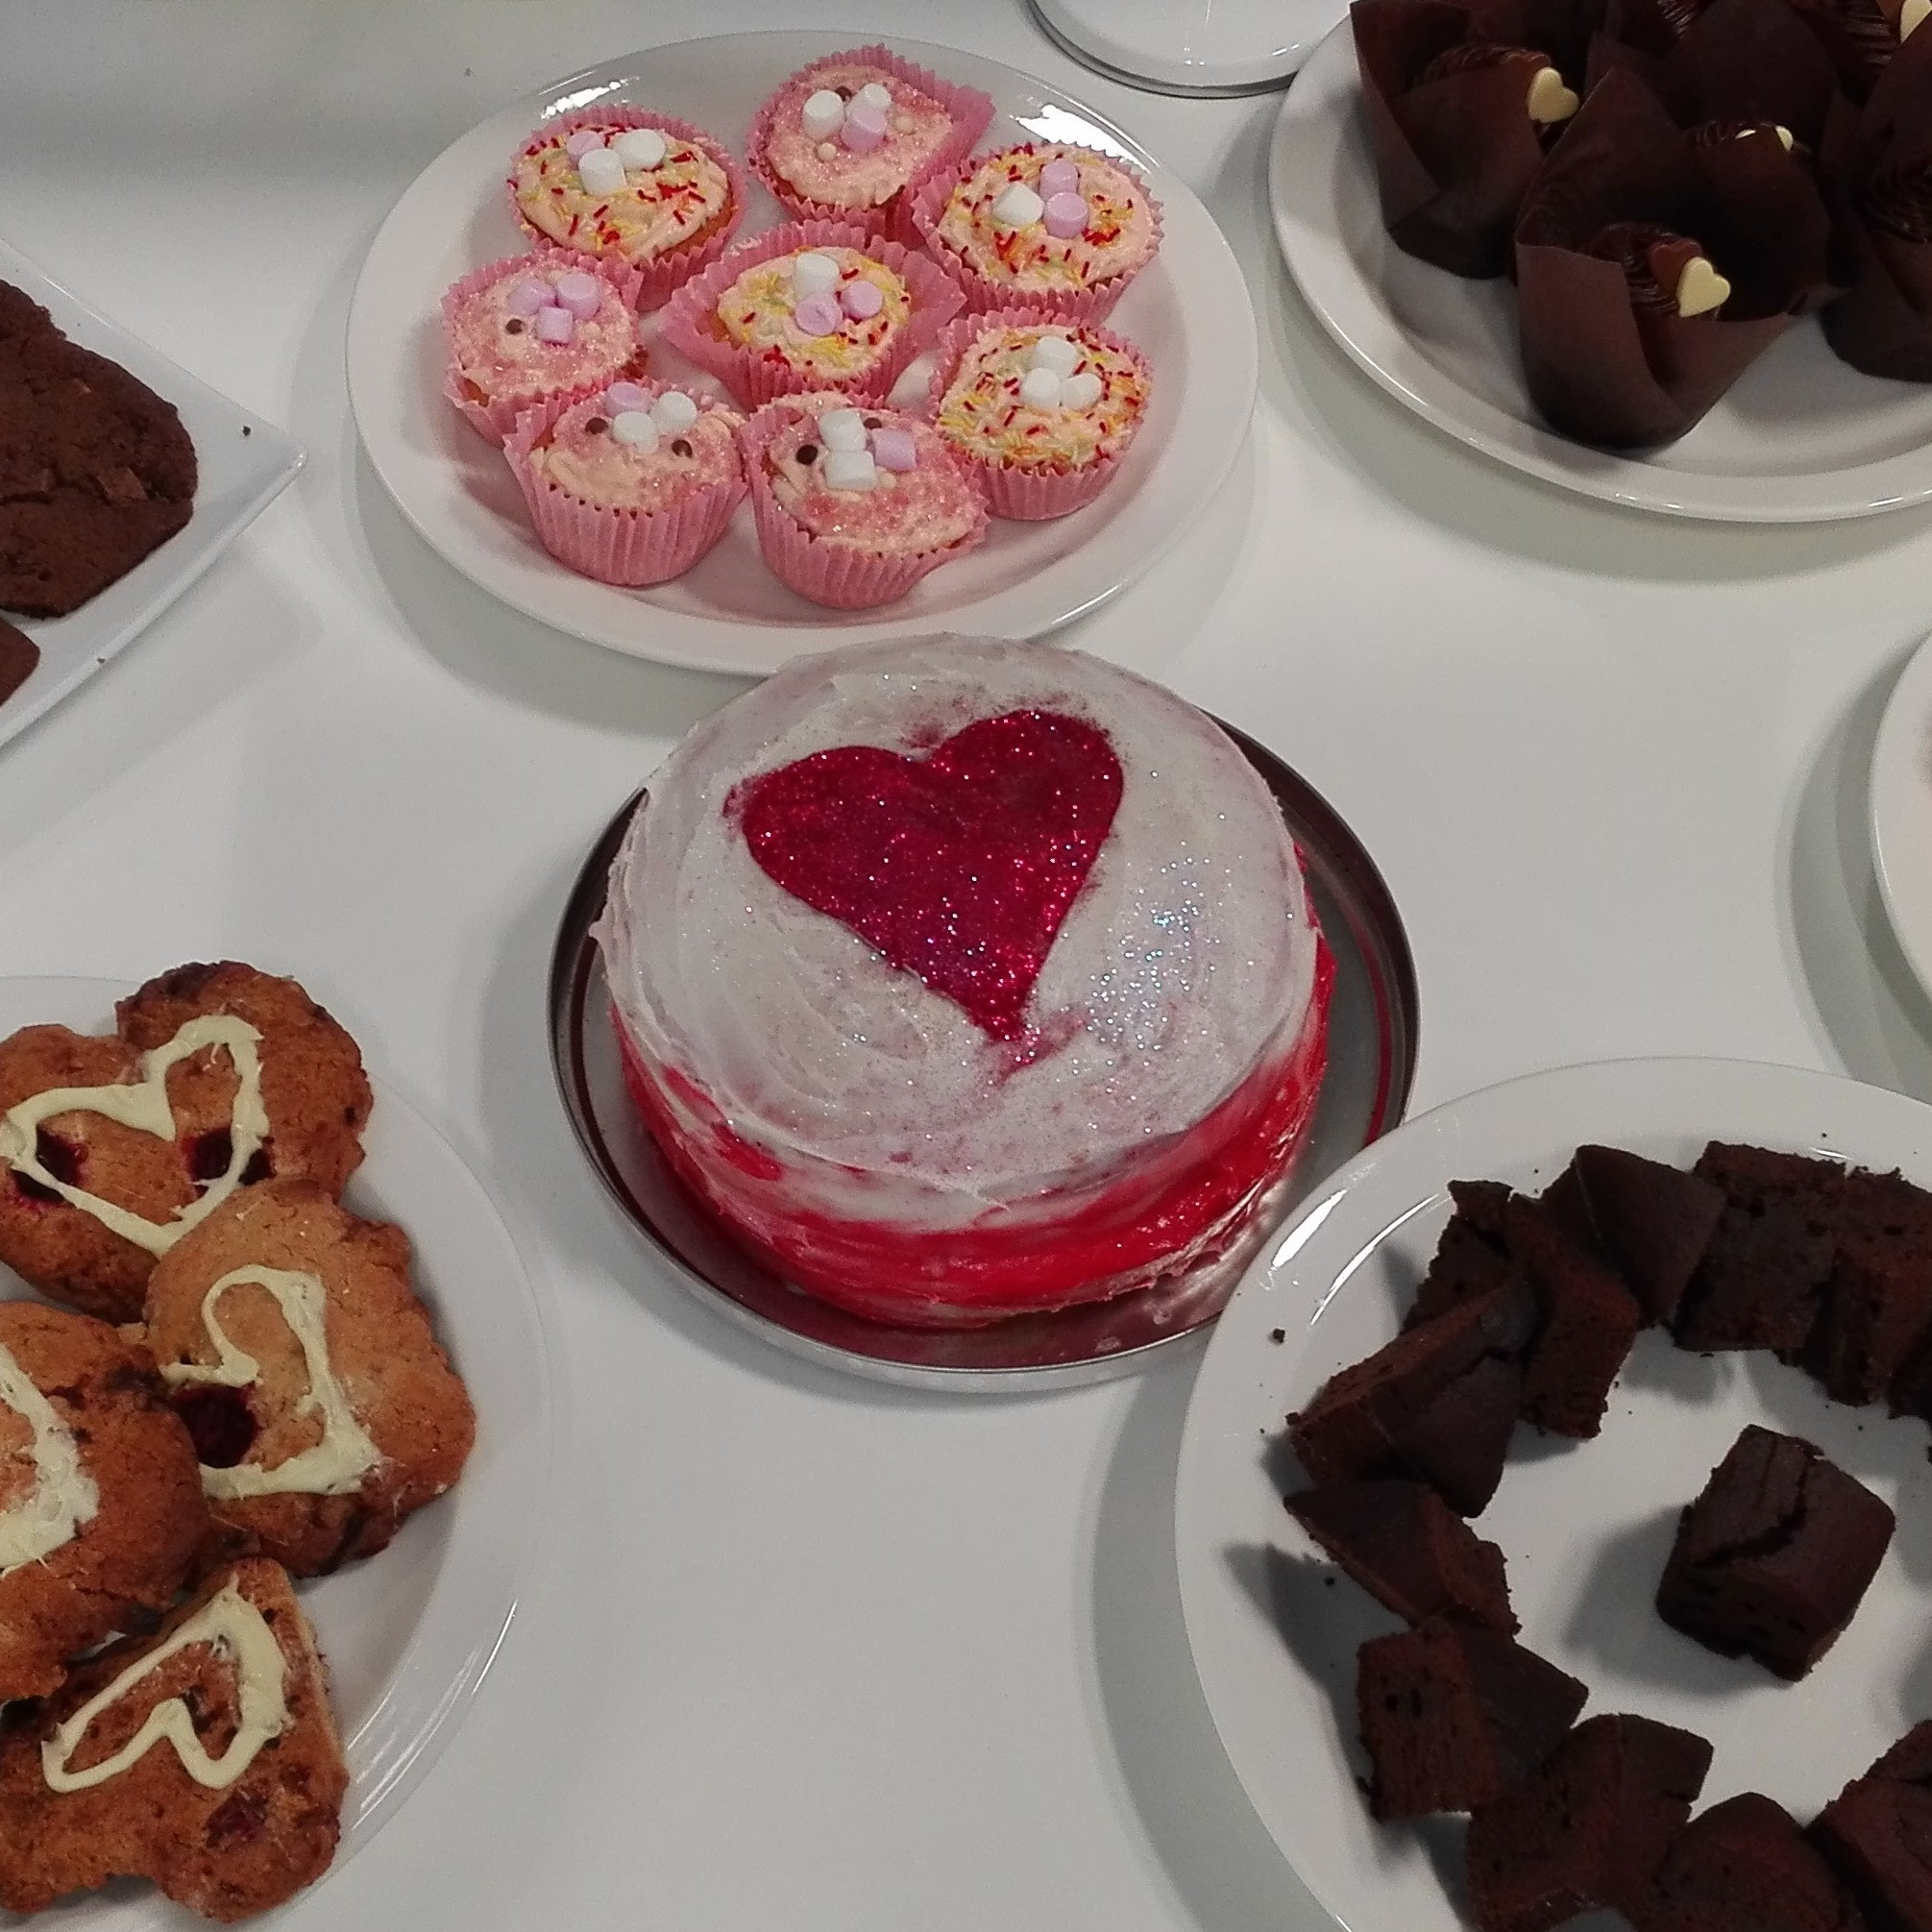 investigo's valentine bake sale - Raised £300